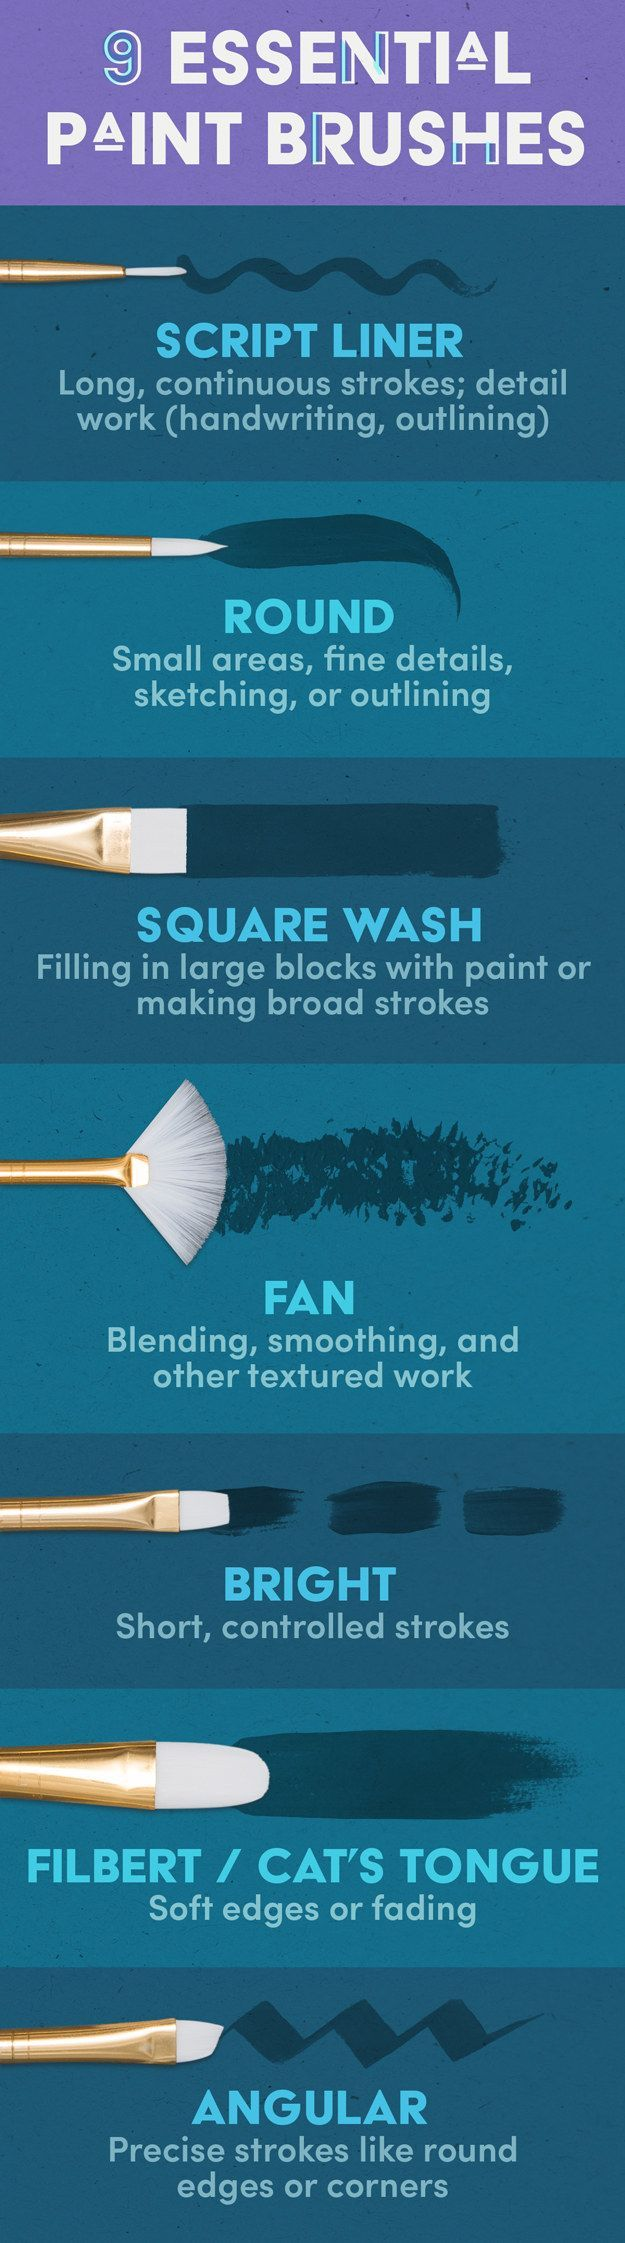 Paint Brushes | How To Actually Use These 11 Essential Craft Supplies The Right Way